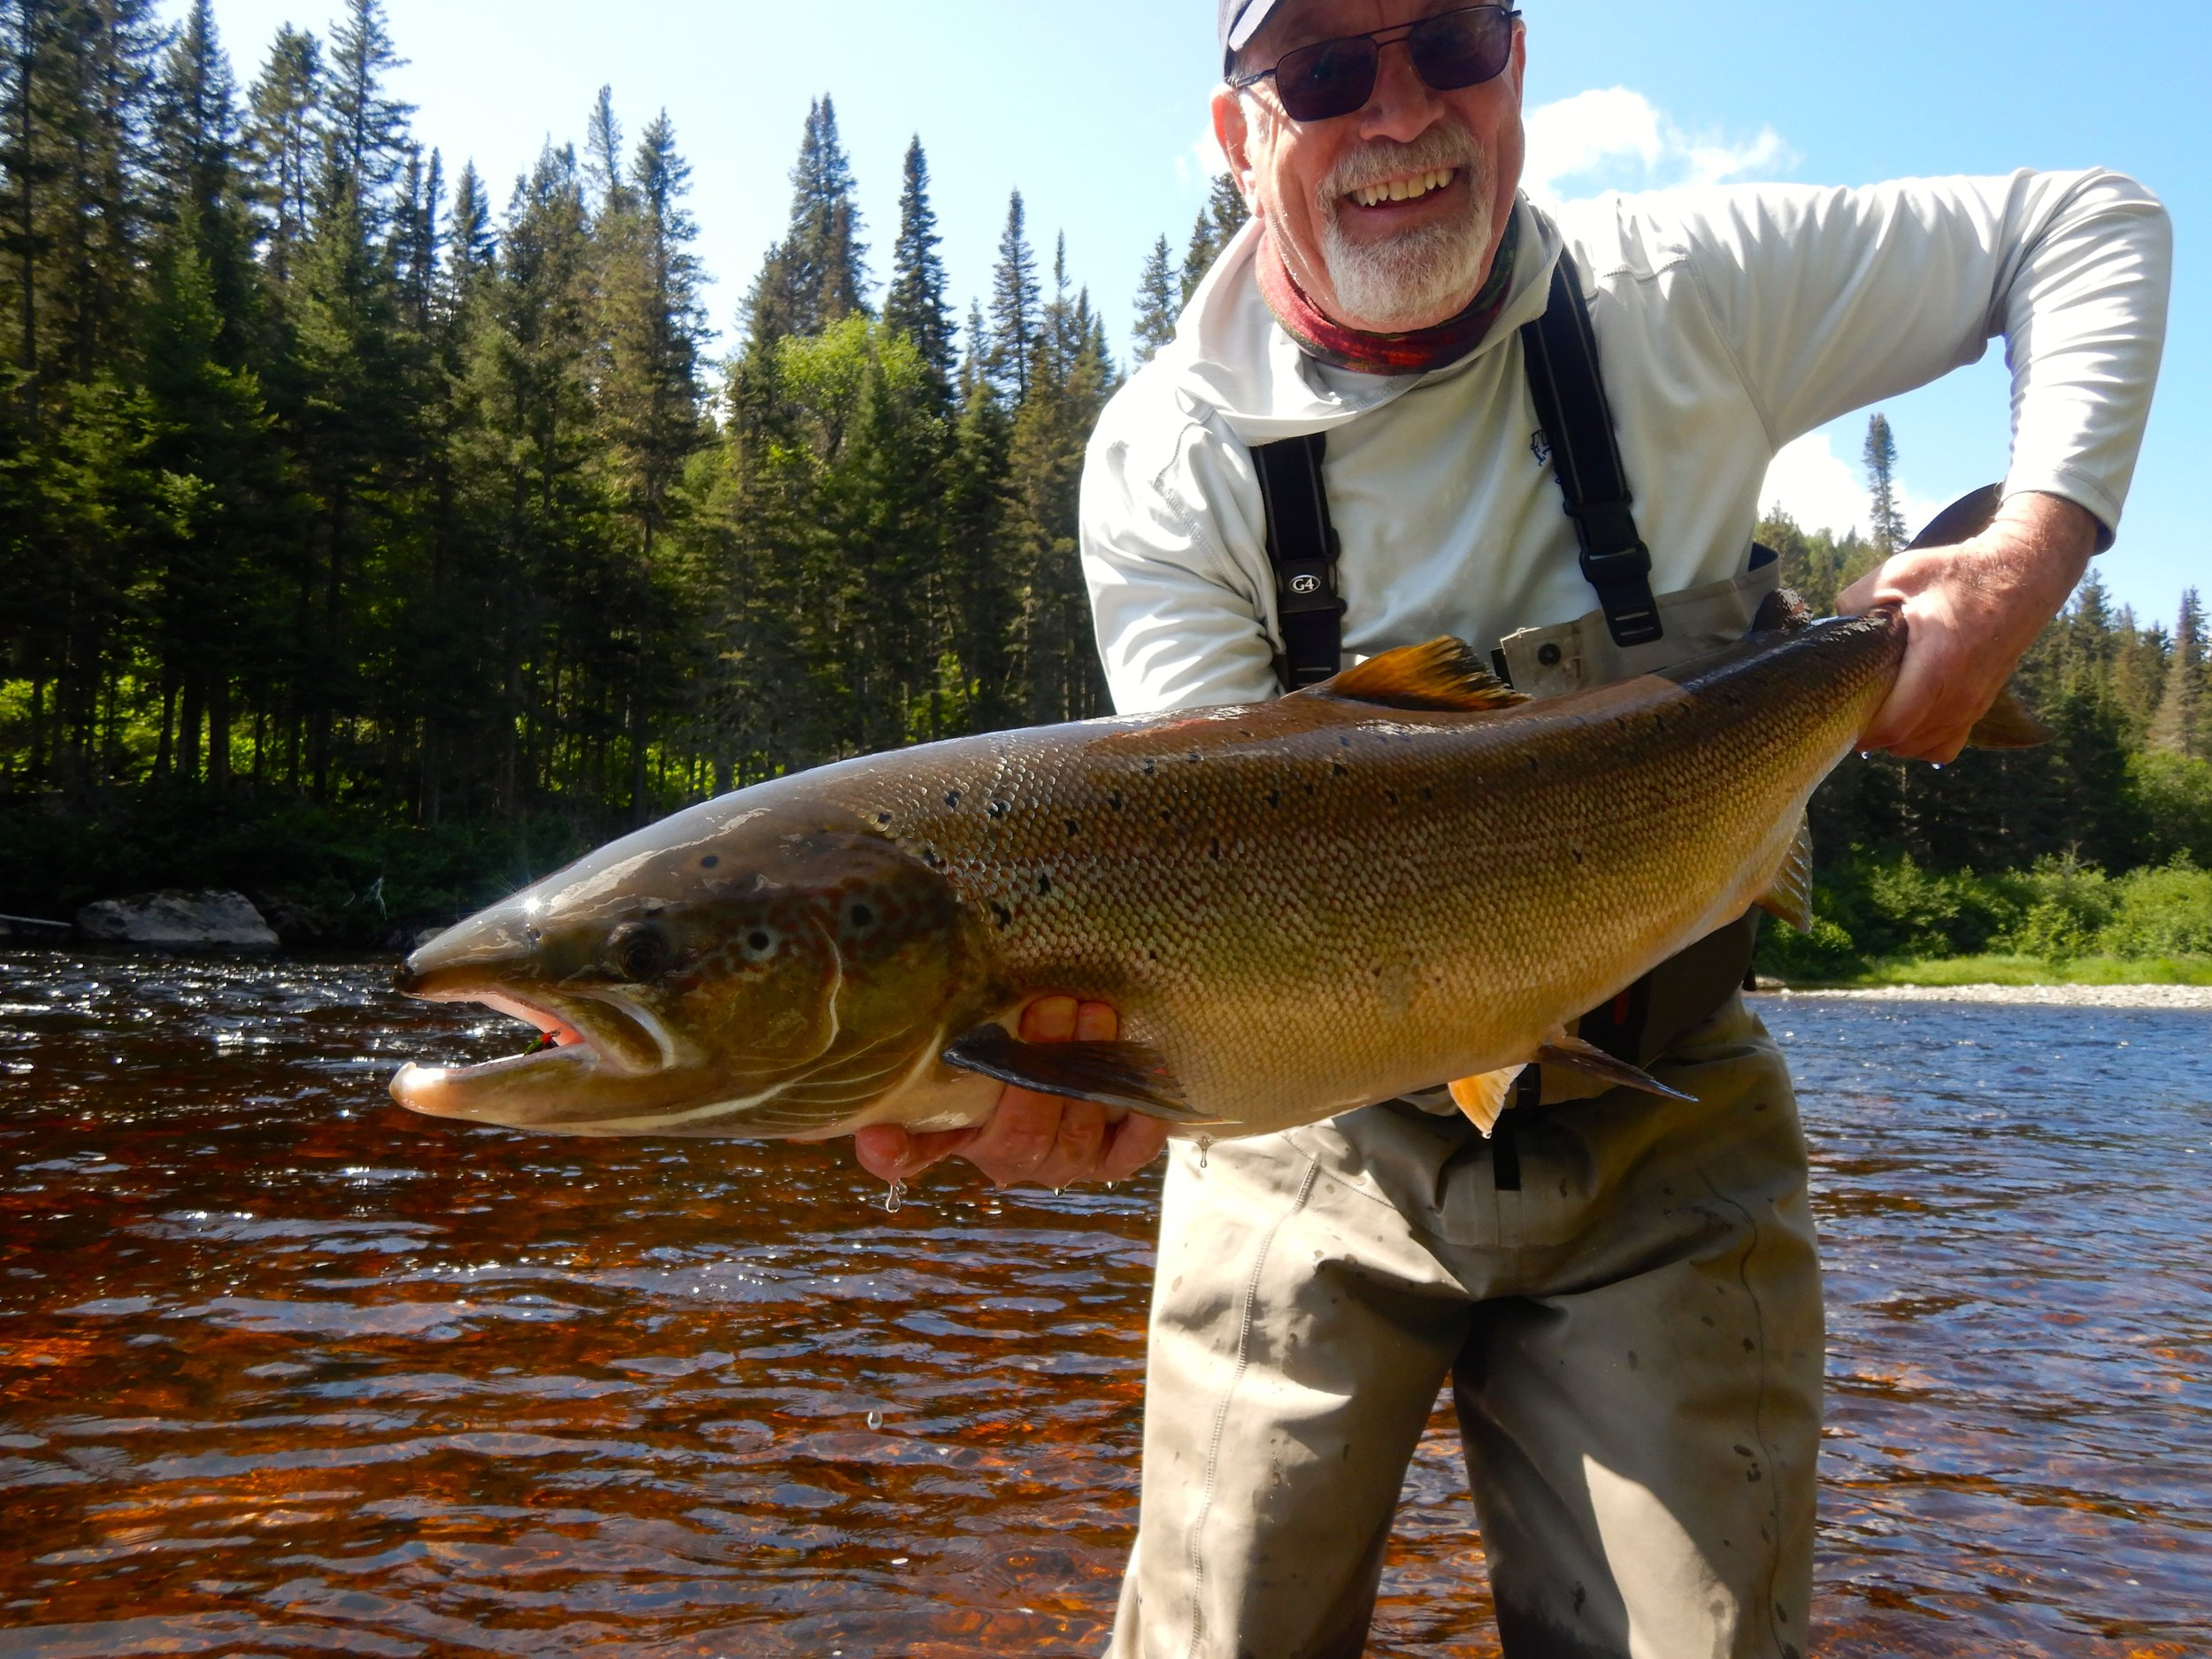 It's always a pleasure to have our dear friend Michael Kendrick at Salmon Lodge! Here he is on his first day releasing a great catch back into the Grand Cascapedia! Congrats Michael!